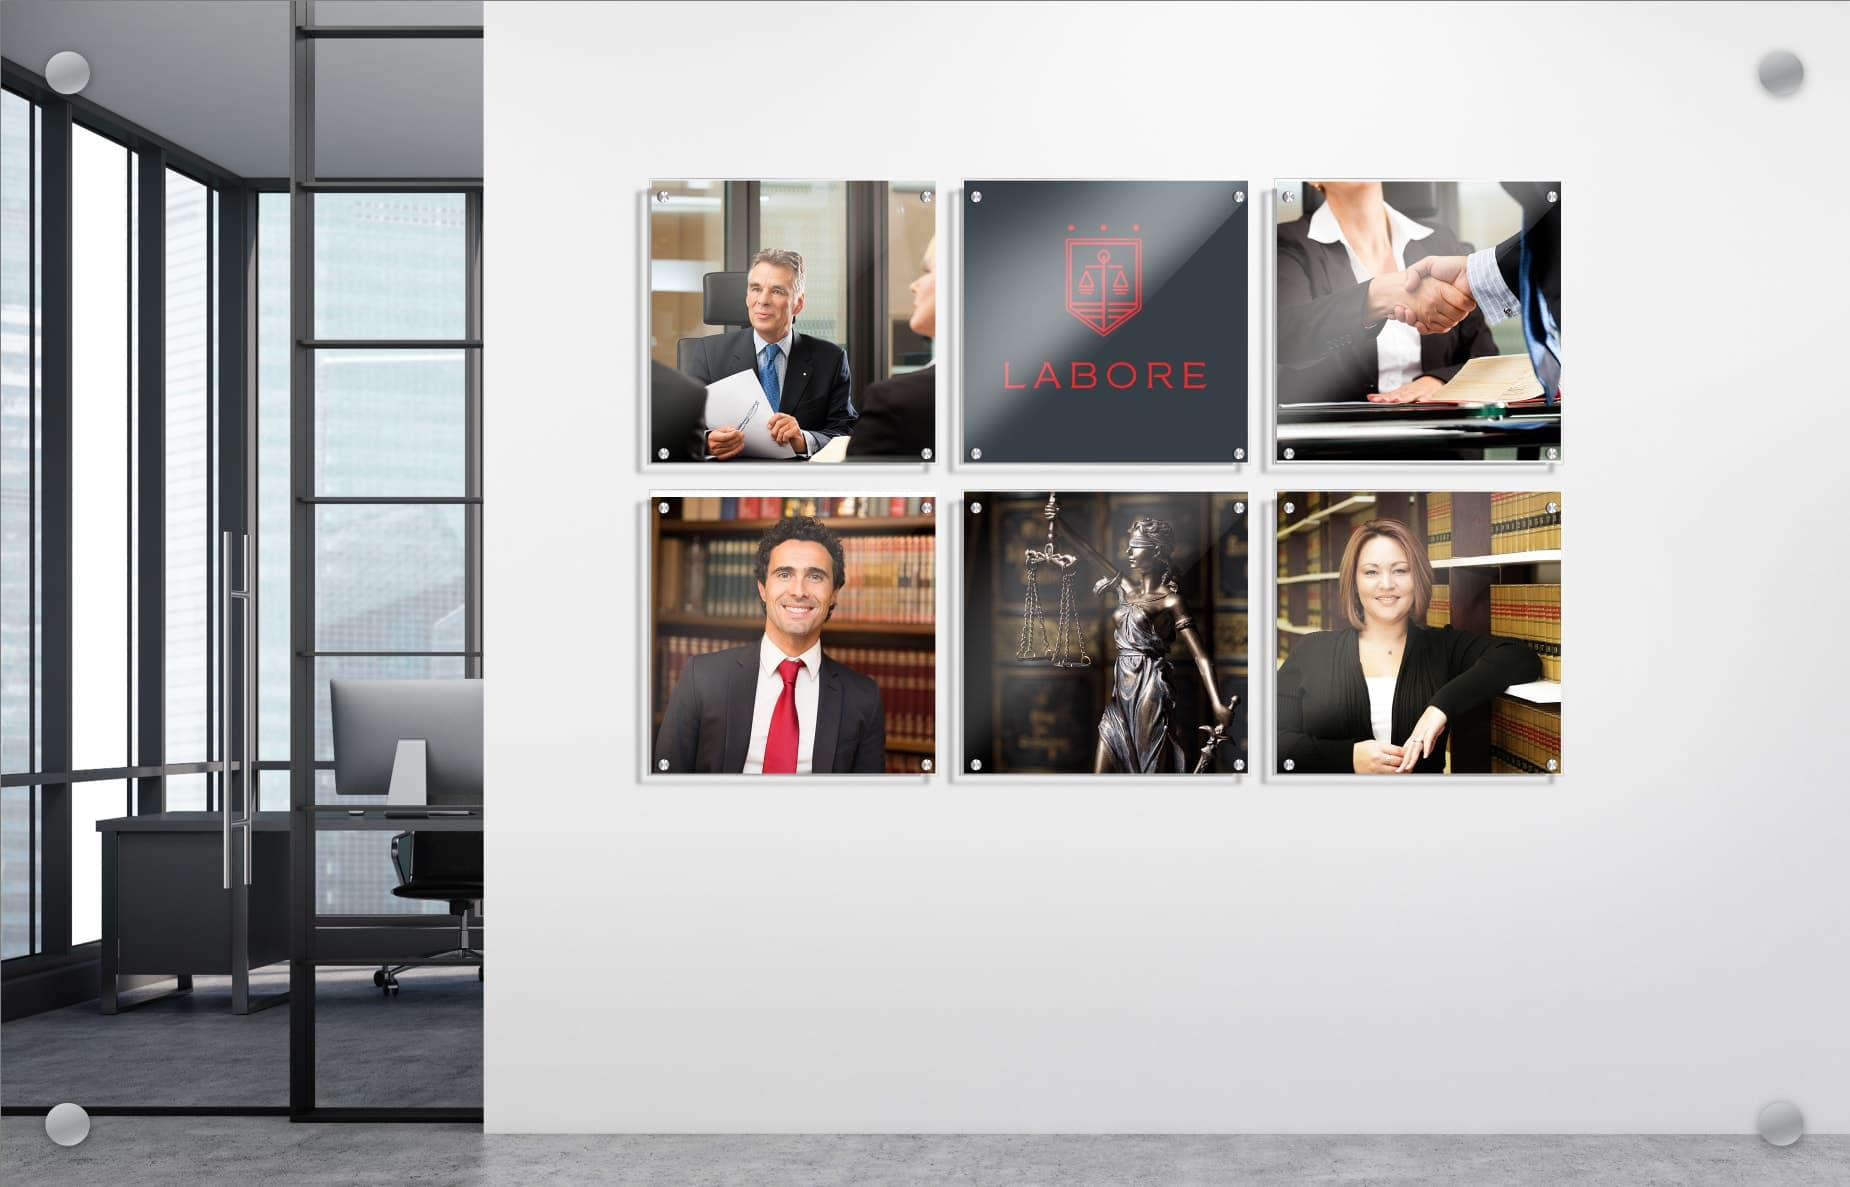 Sample image of Wallkeepers finished product. Six photos in a grid overlayed on to an interior wall.